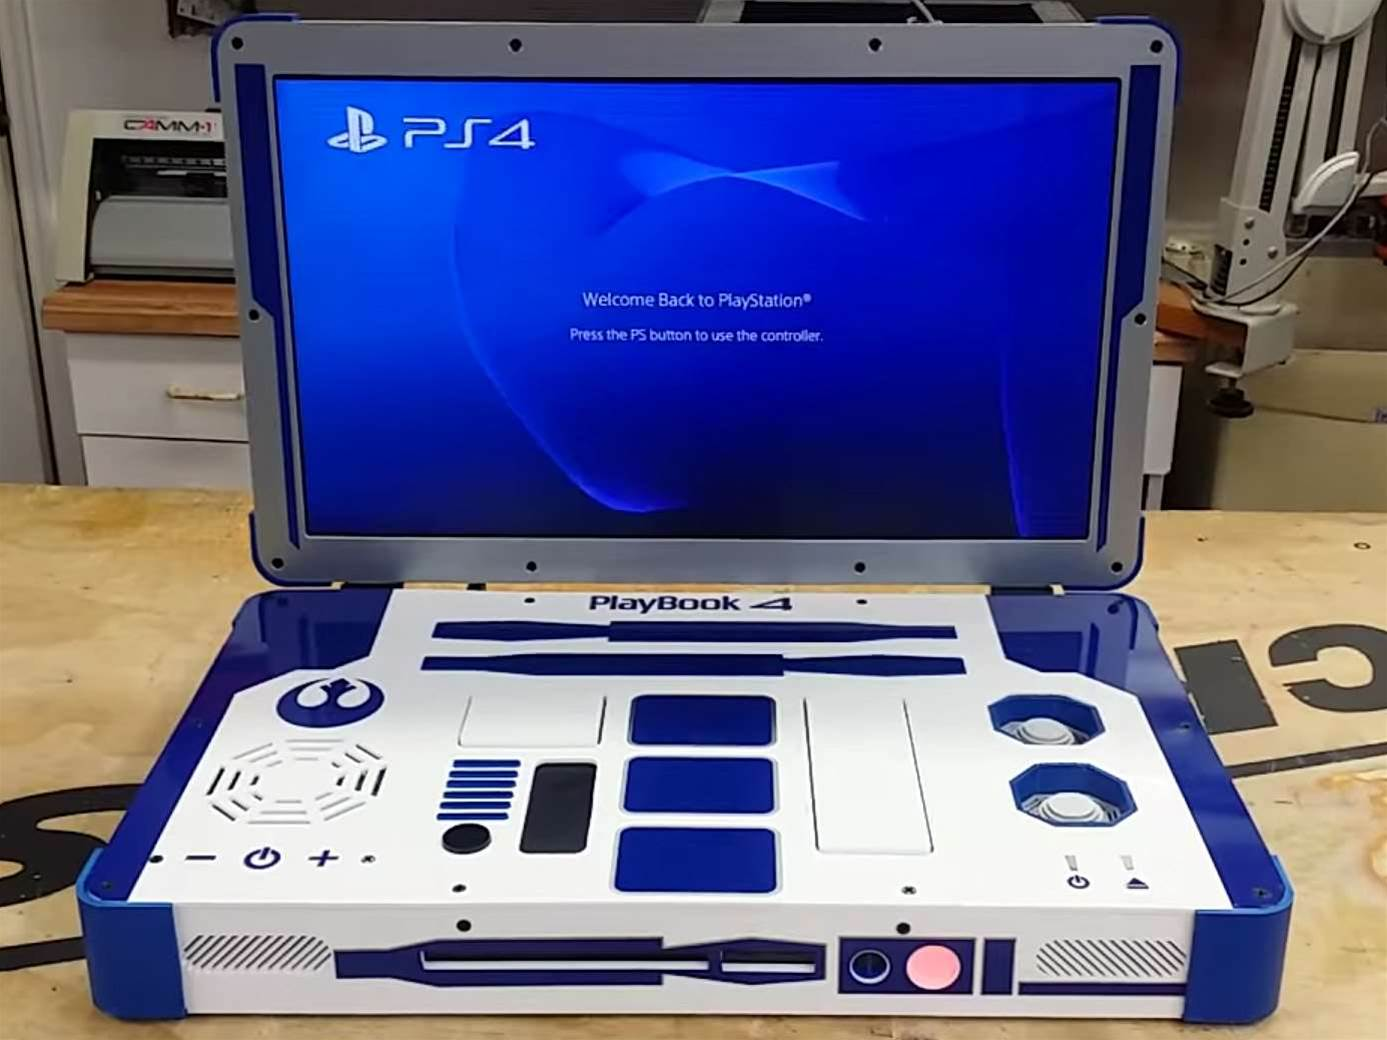 We'd punch Chewbacca in the face for this portable R2-D2 PS4